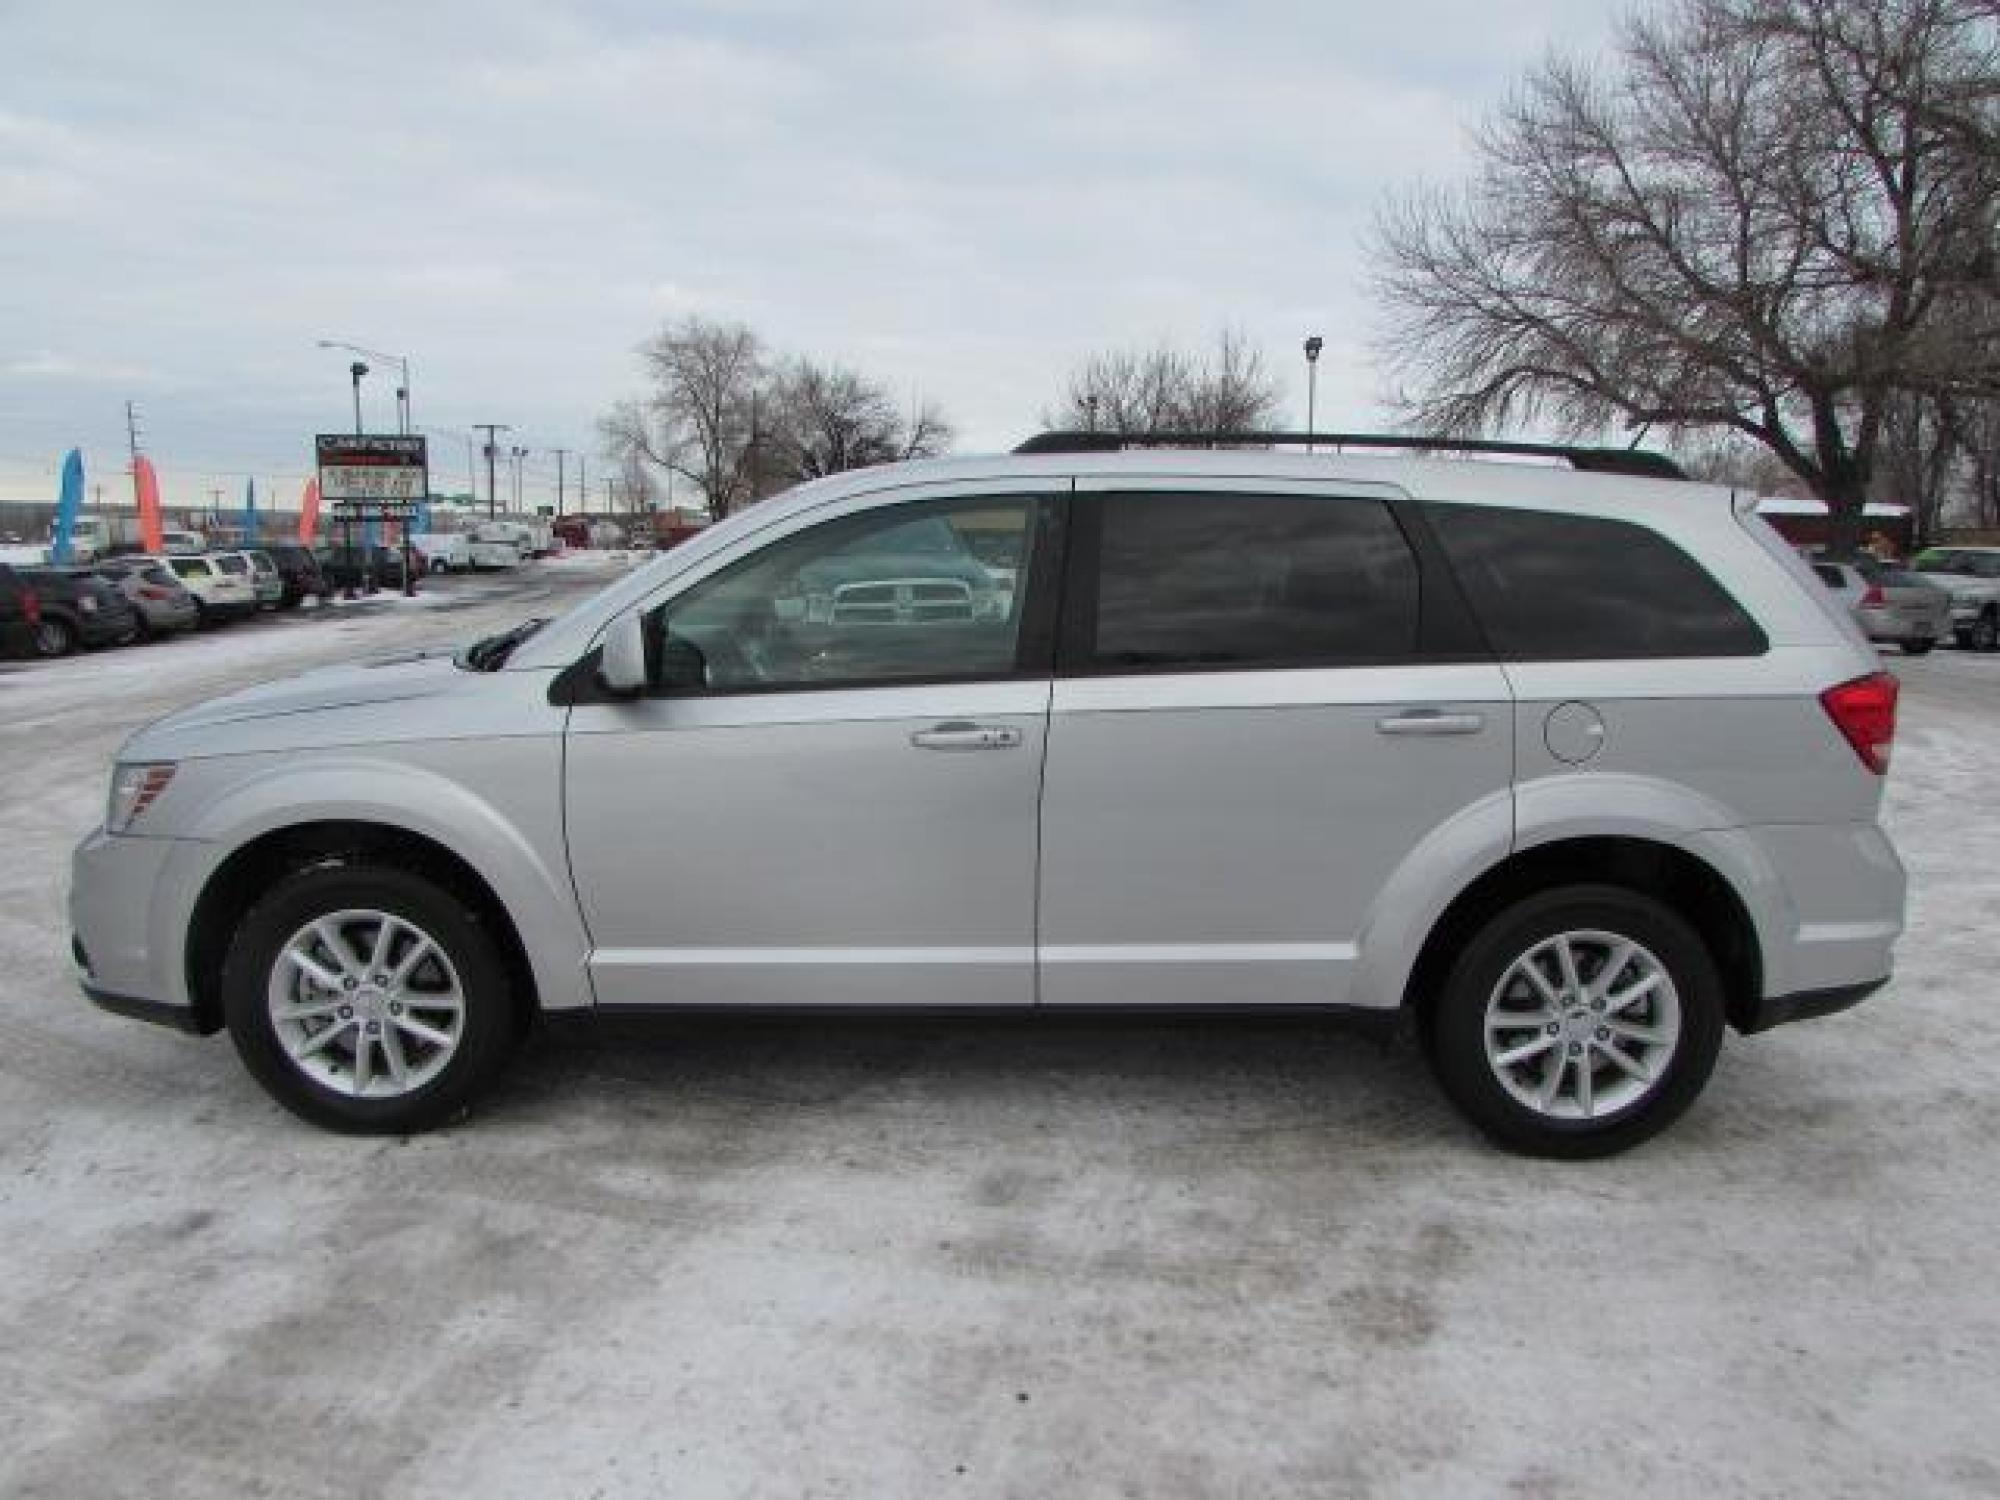 used dodge journey for sale billings mt cargurus. Black Bedroom Furniture Sets. Home Design Ideas